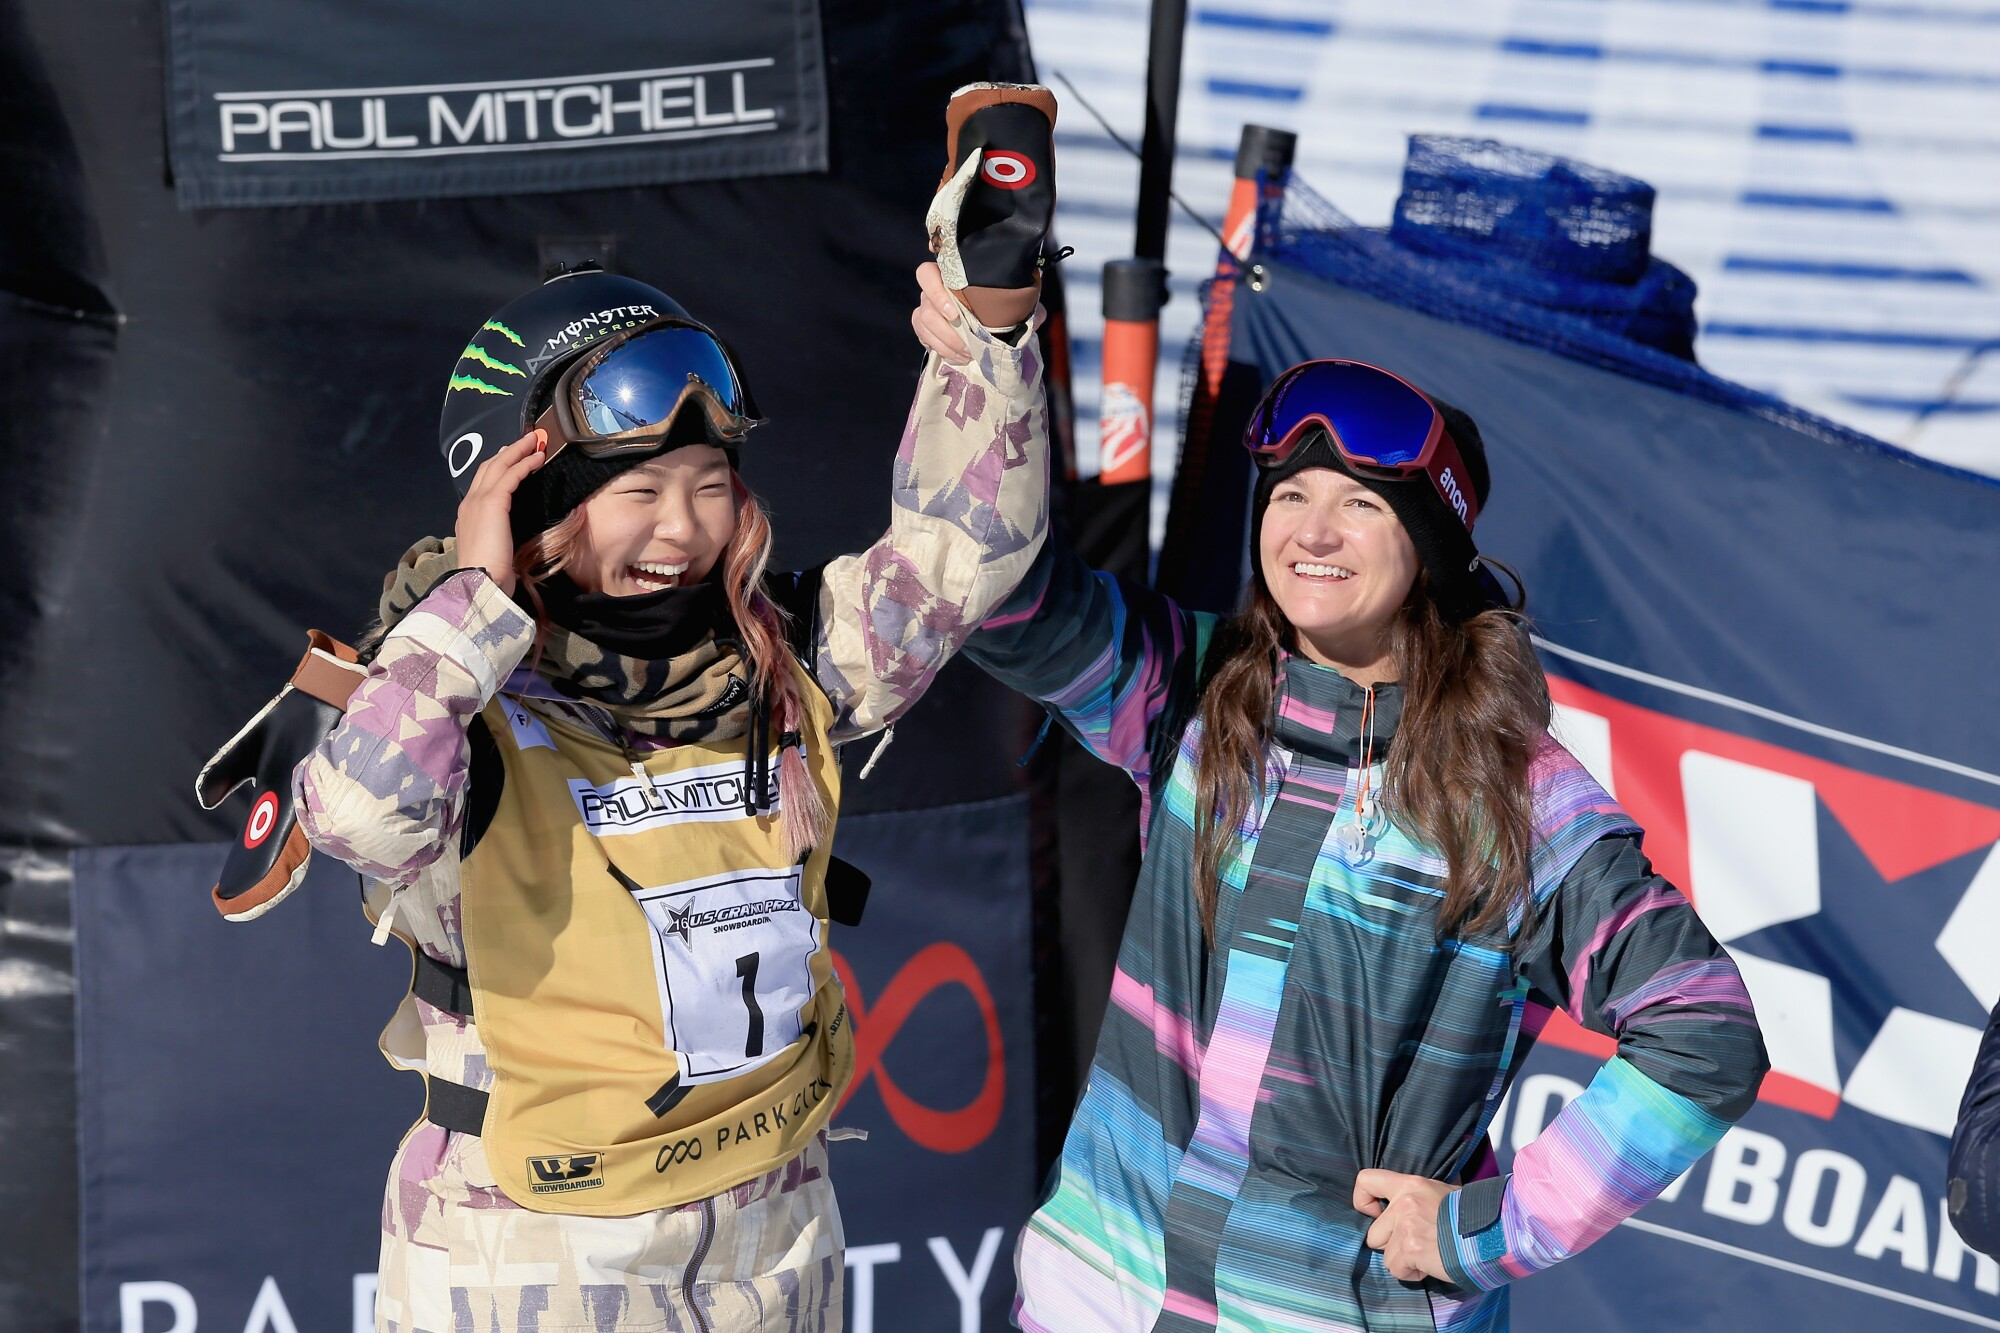 Chloe Kim, left, celebrates a first-place finish with Kelly Clark in the ladies' FIS Snowboard World Cup at the 2016 U.S Snowboarding Park City Grand Prix in Park City, Utah.